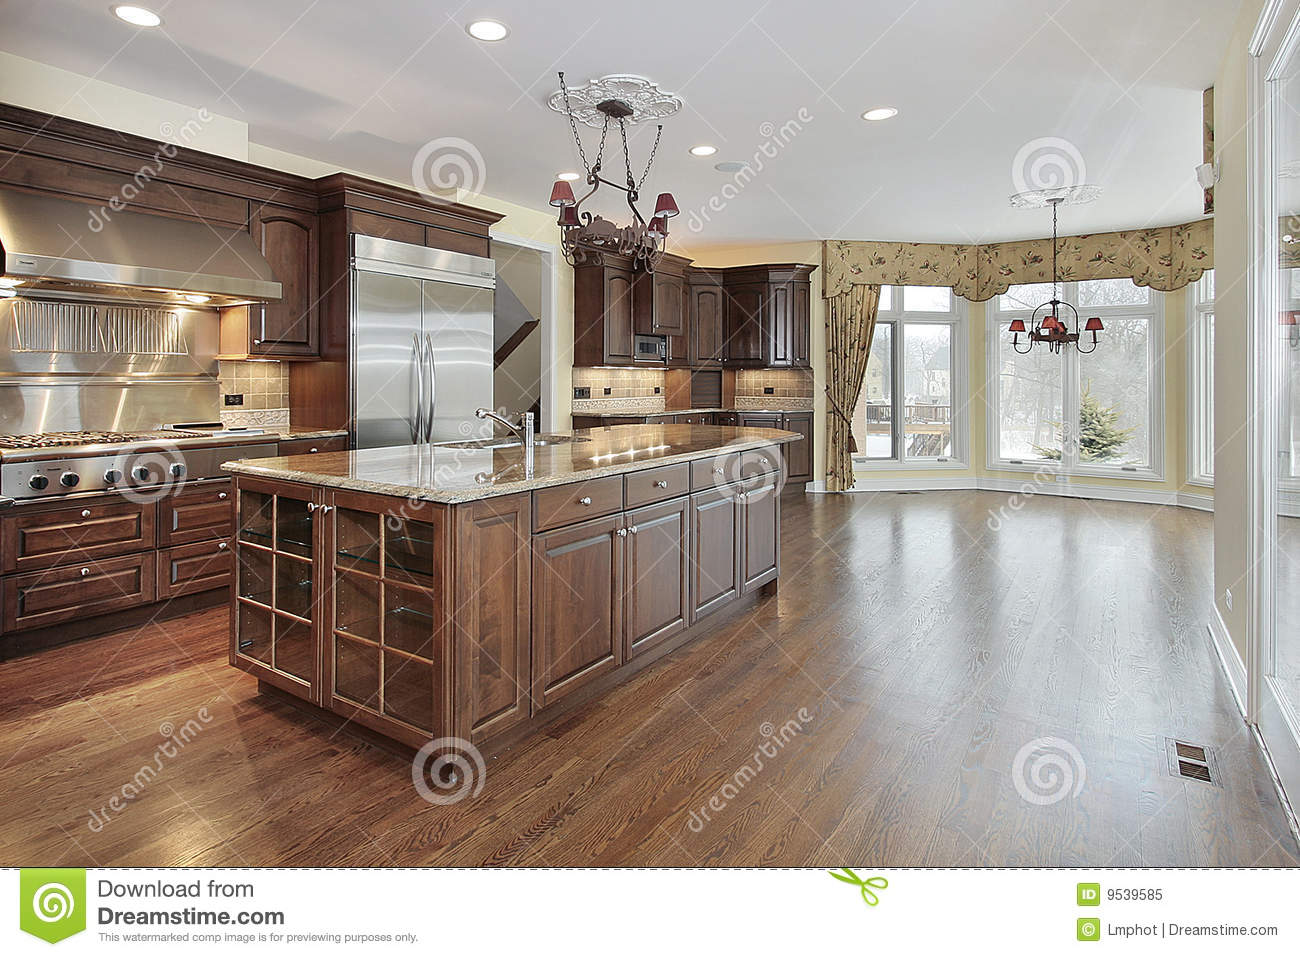 kitchen and eating area royalty free stock photo image